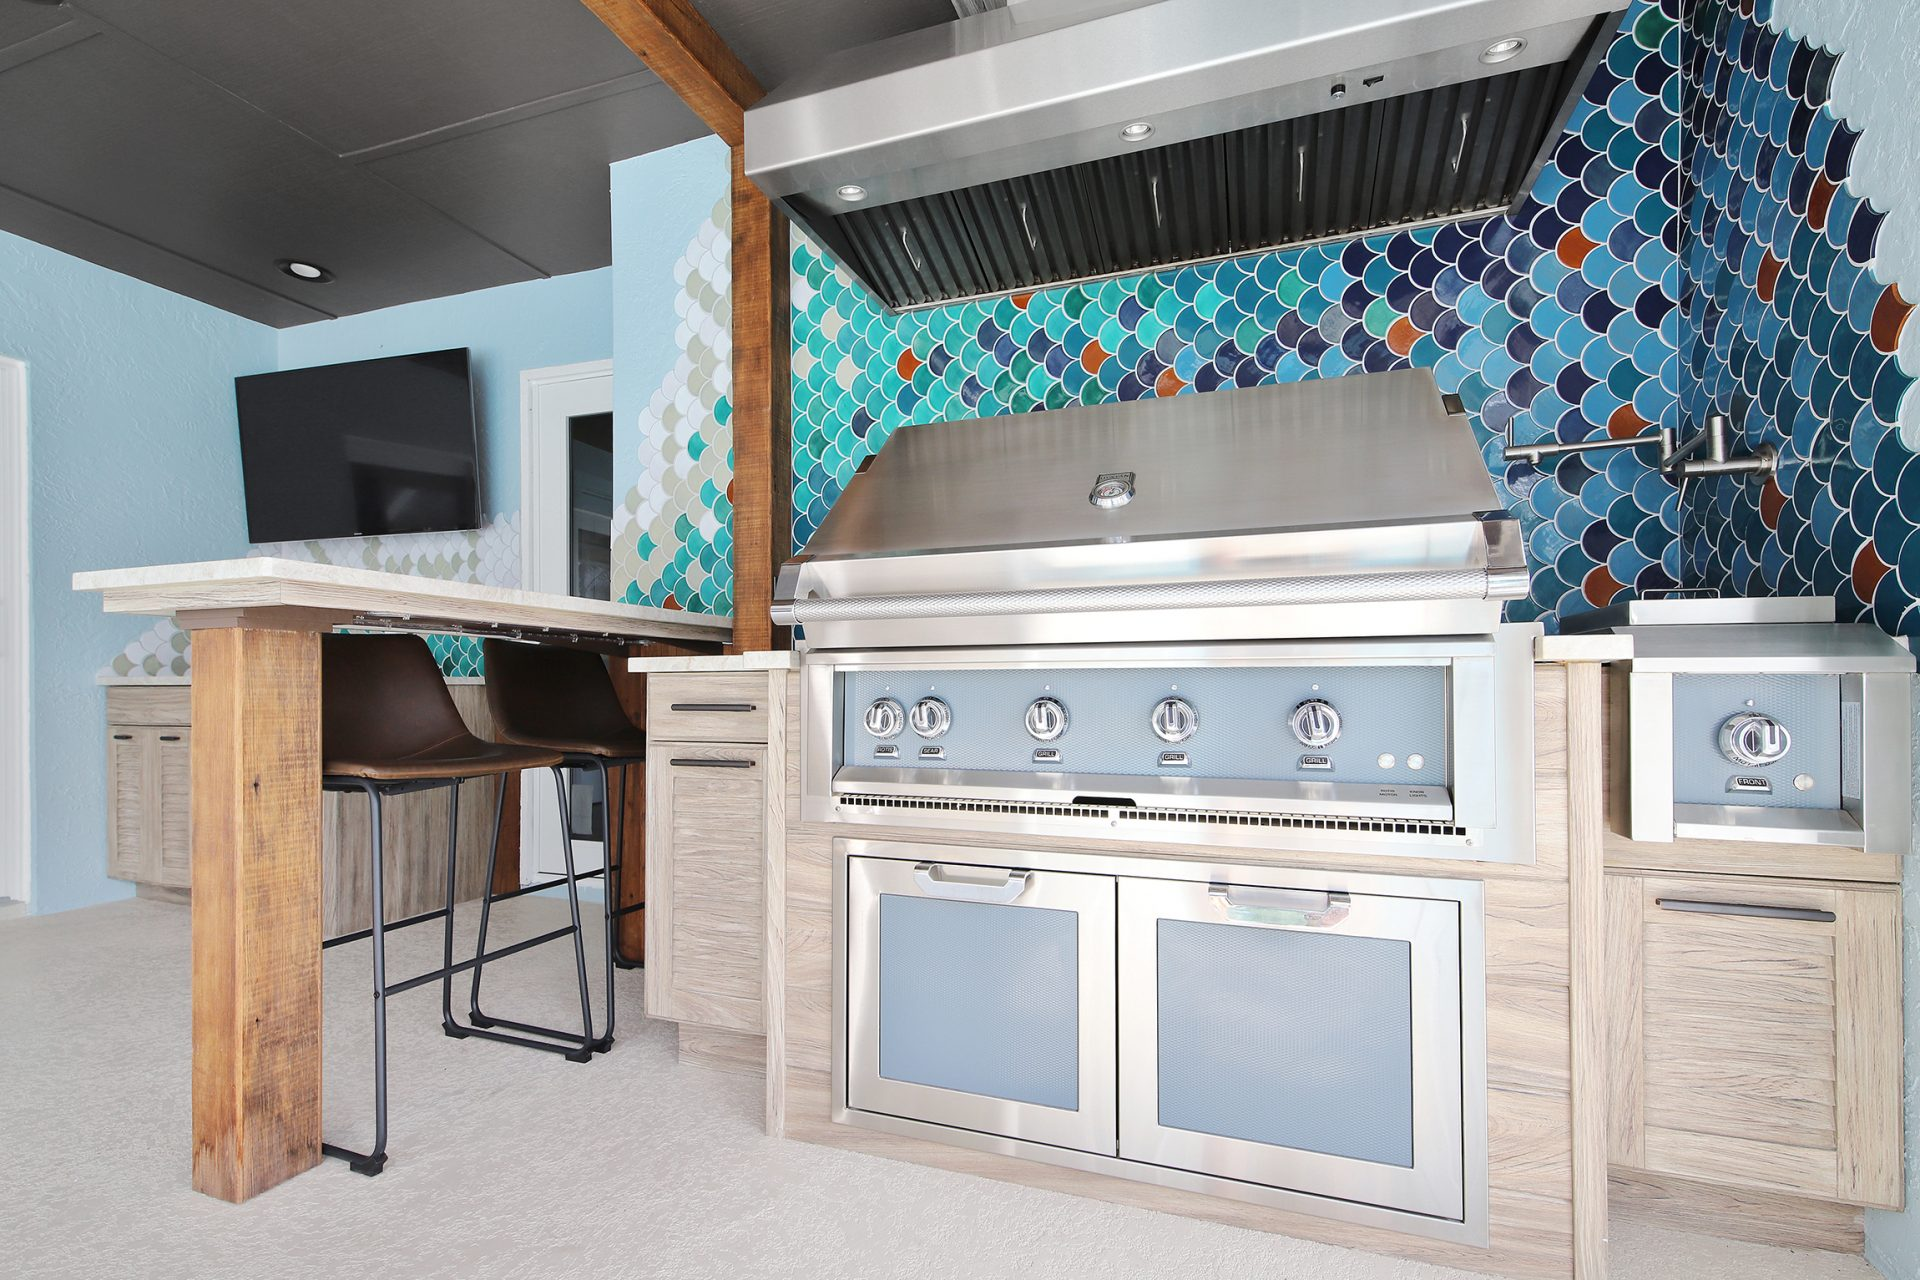 Fish Scale Outdoor Kitchen | Grill